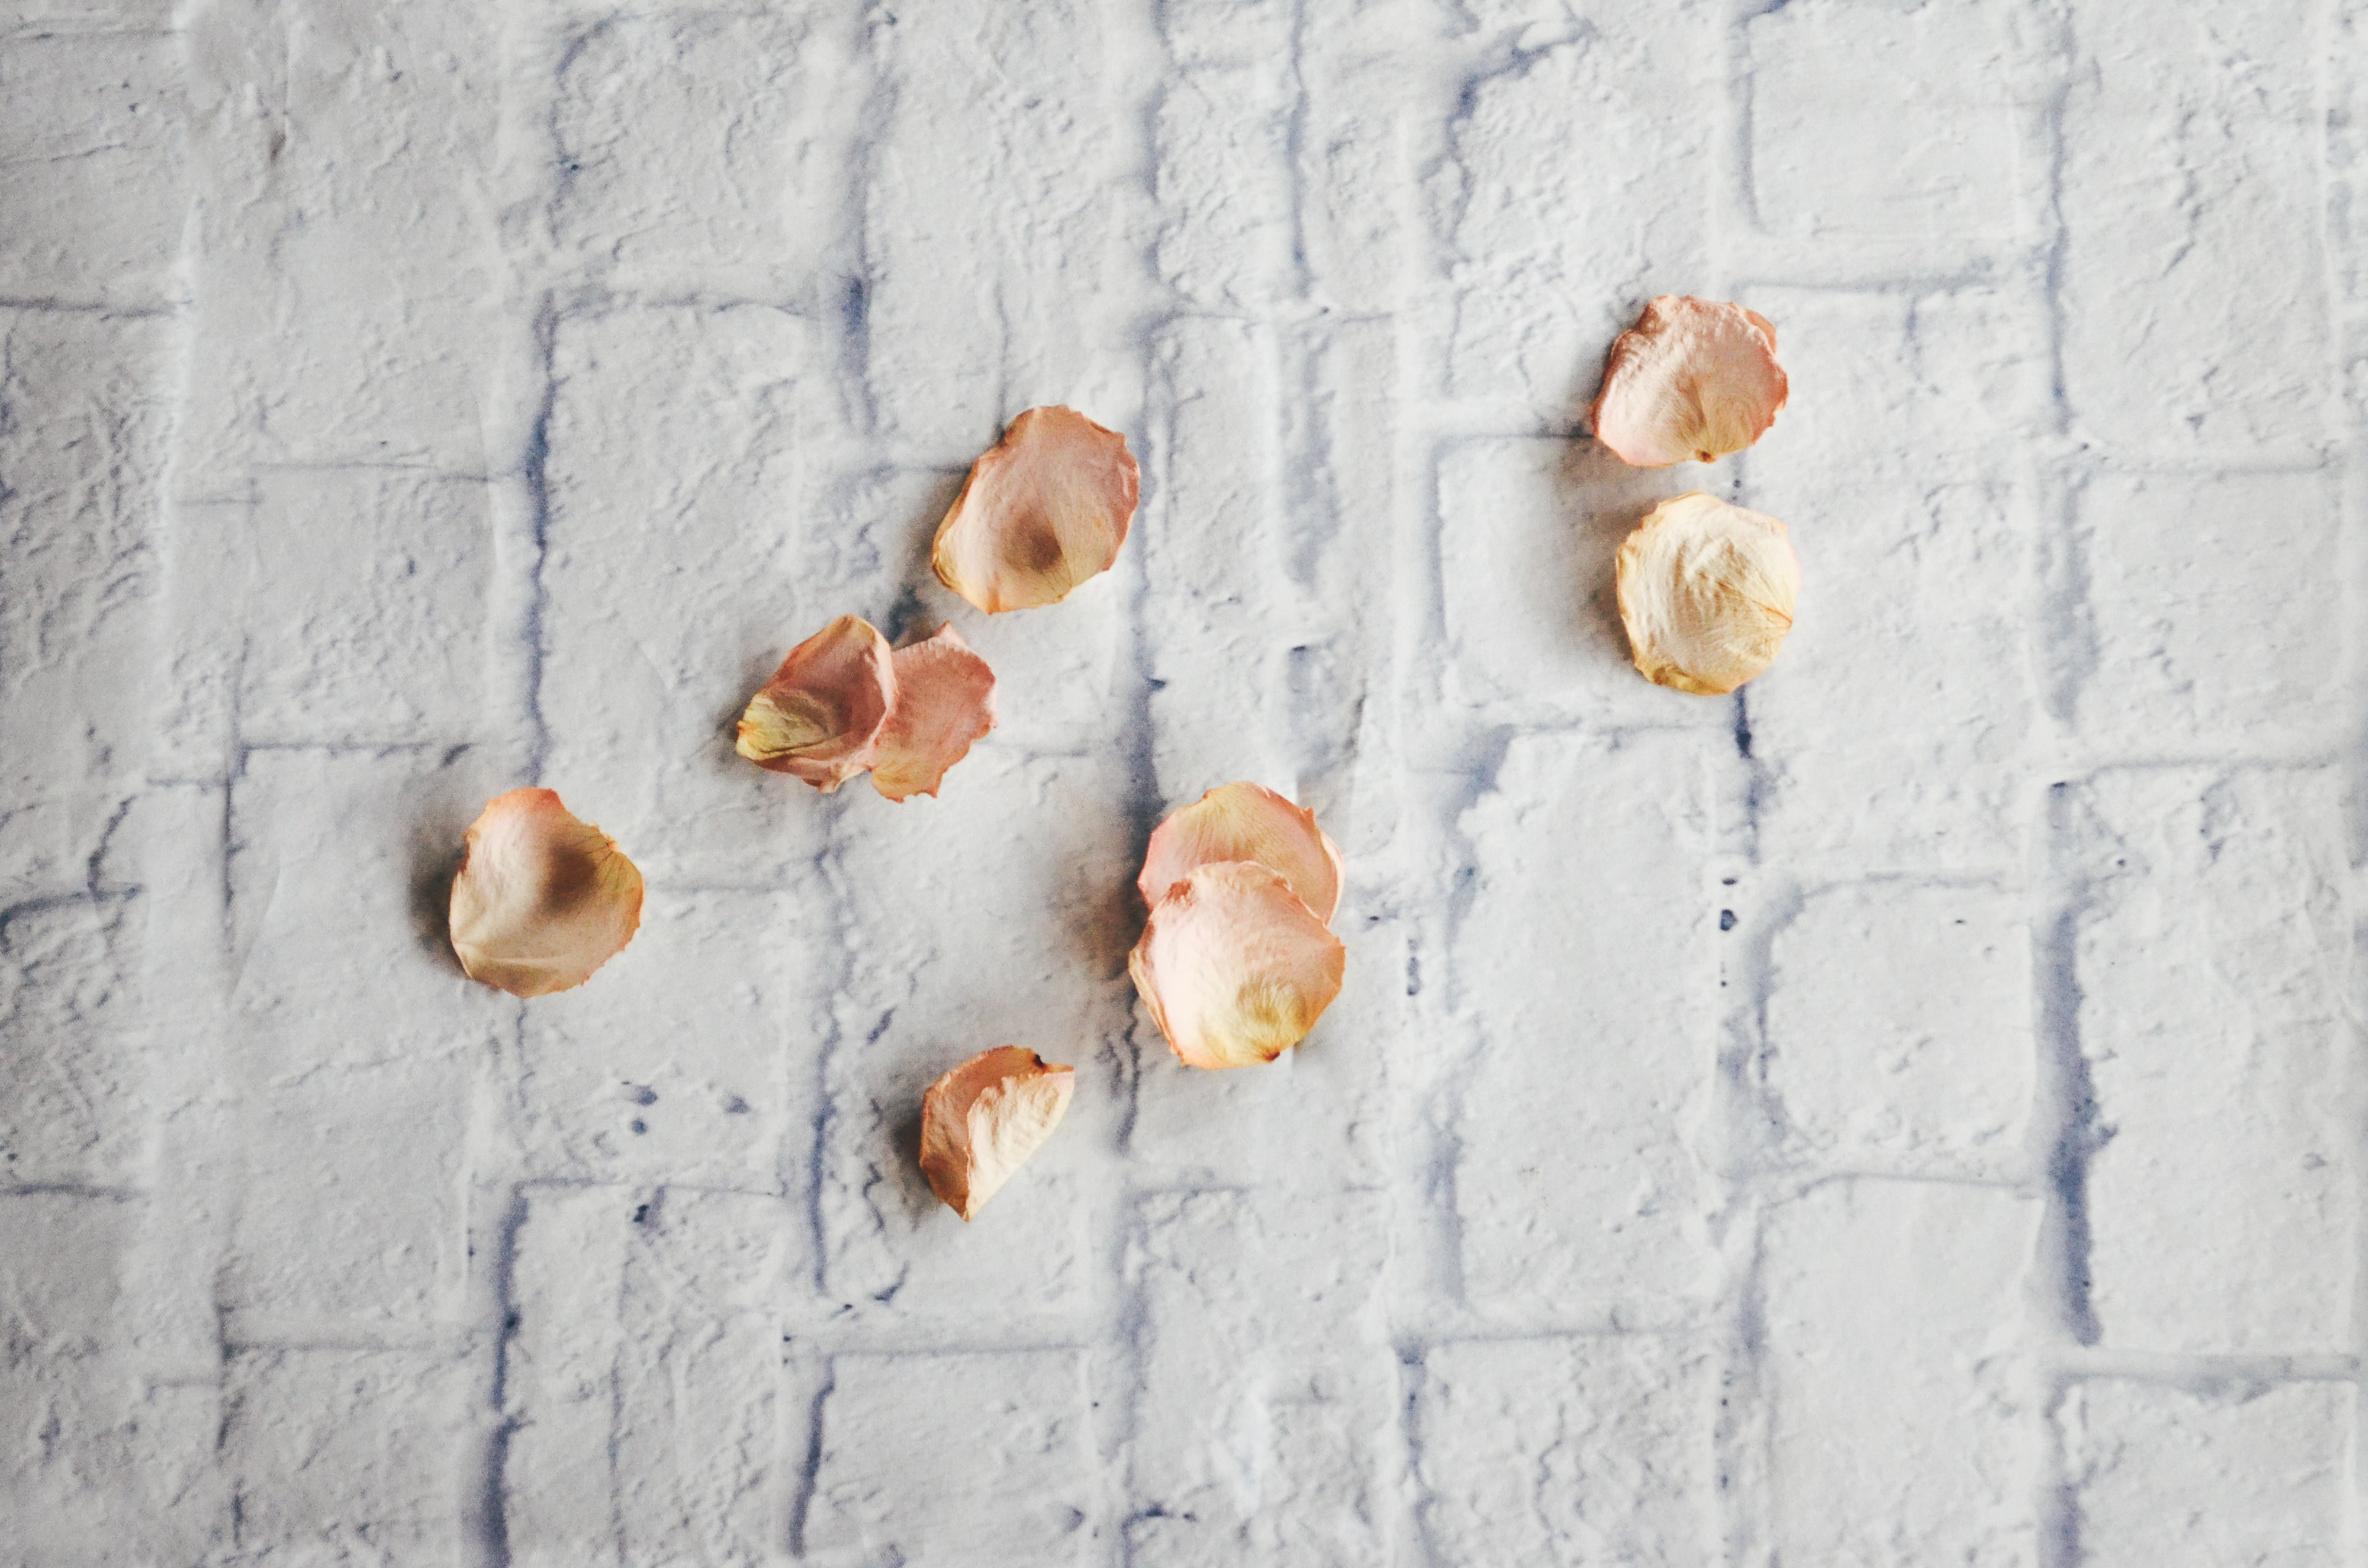 nine withered rose petals on white surface